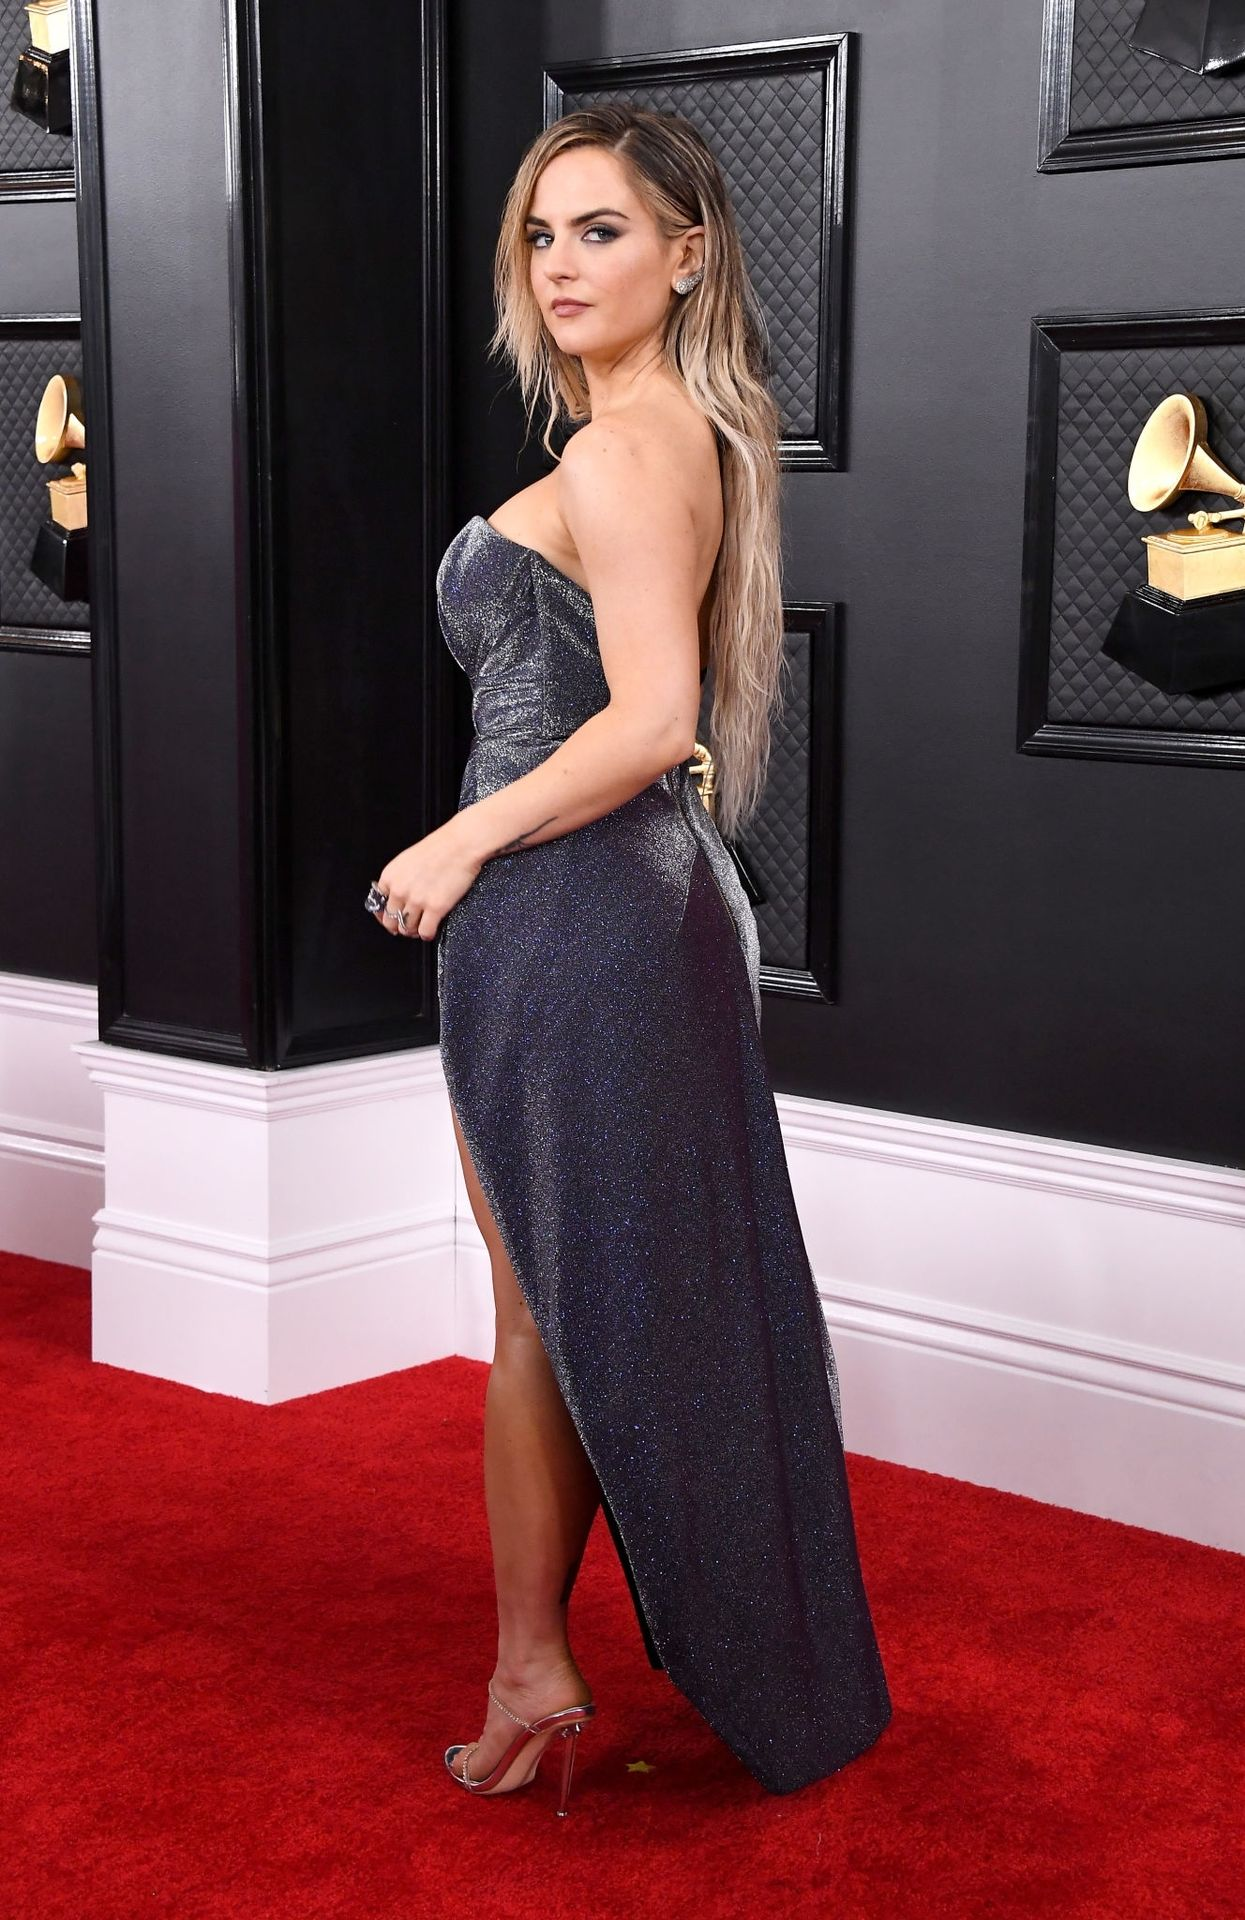 Jojo Shows Her Legs And Cleavage At The 62nd Annual Grammy Awards 0019